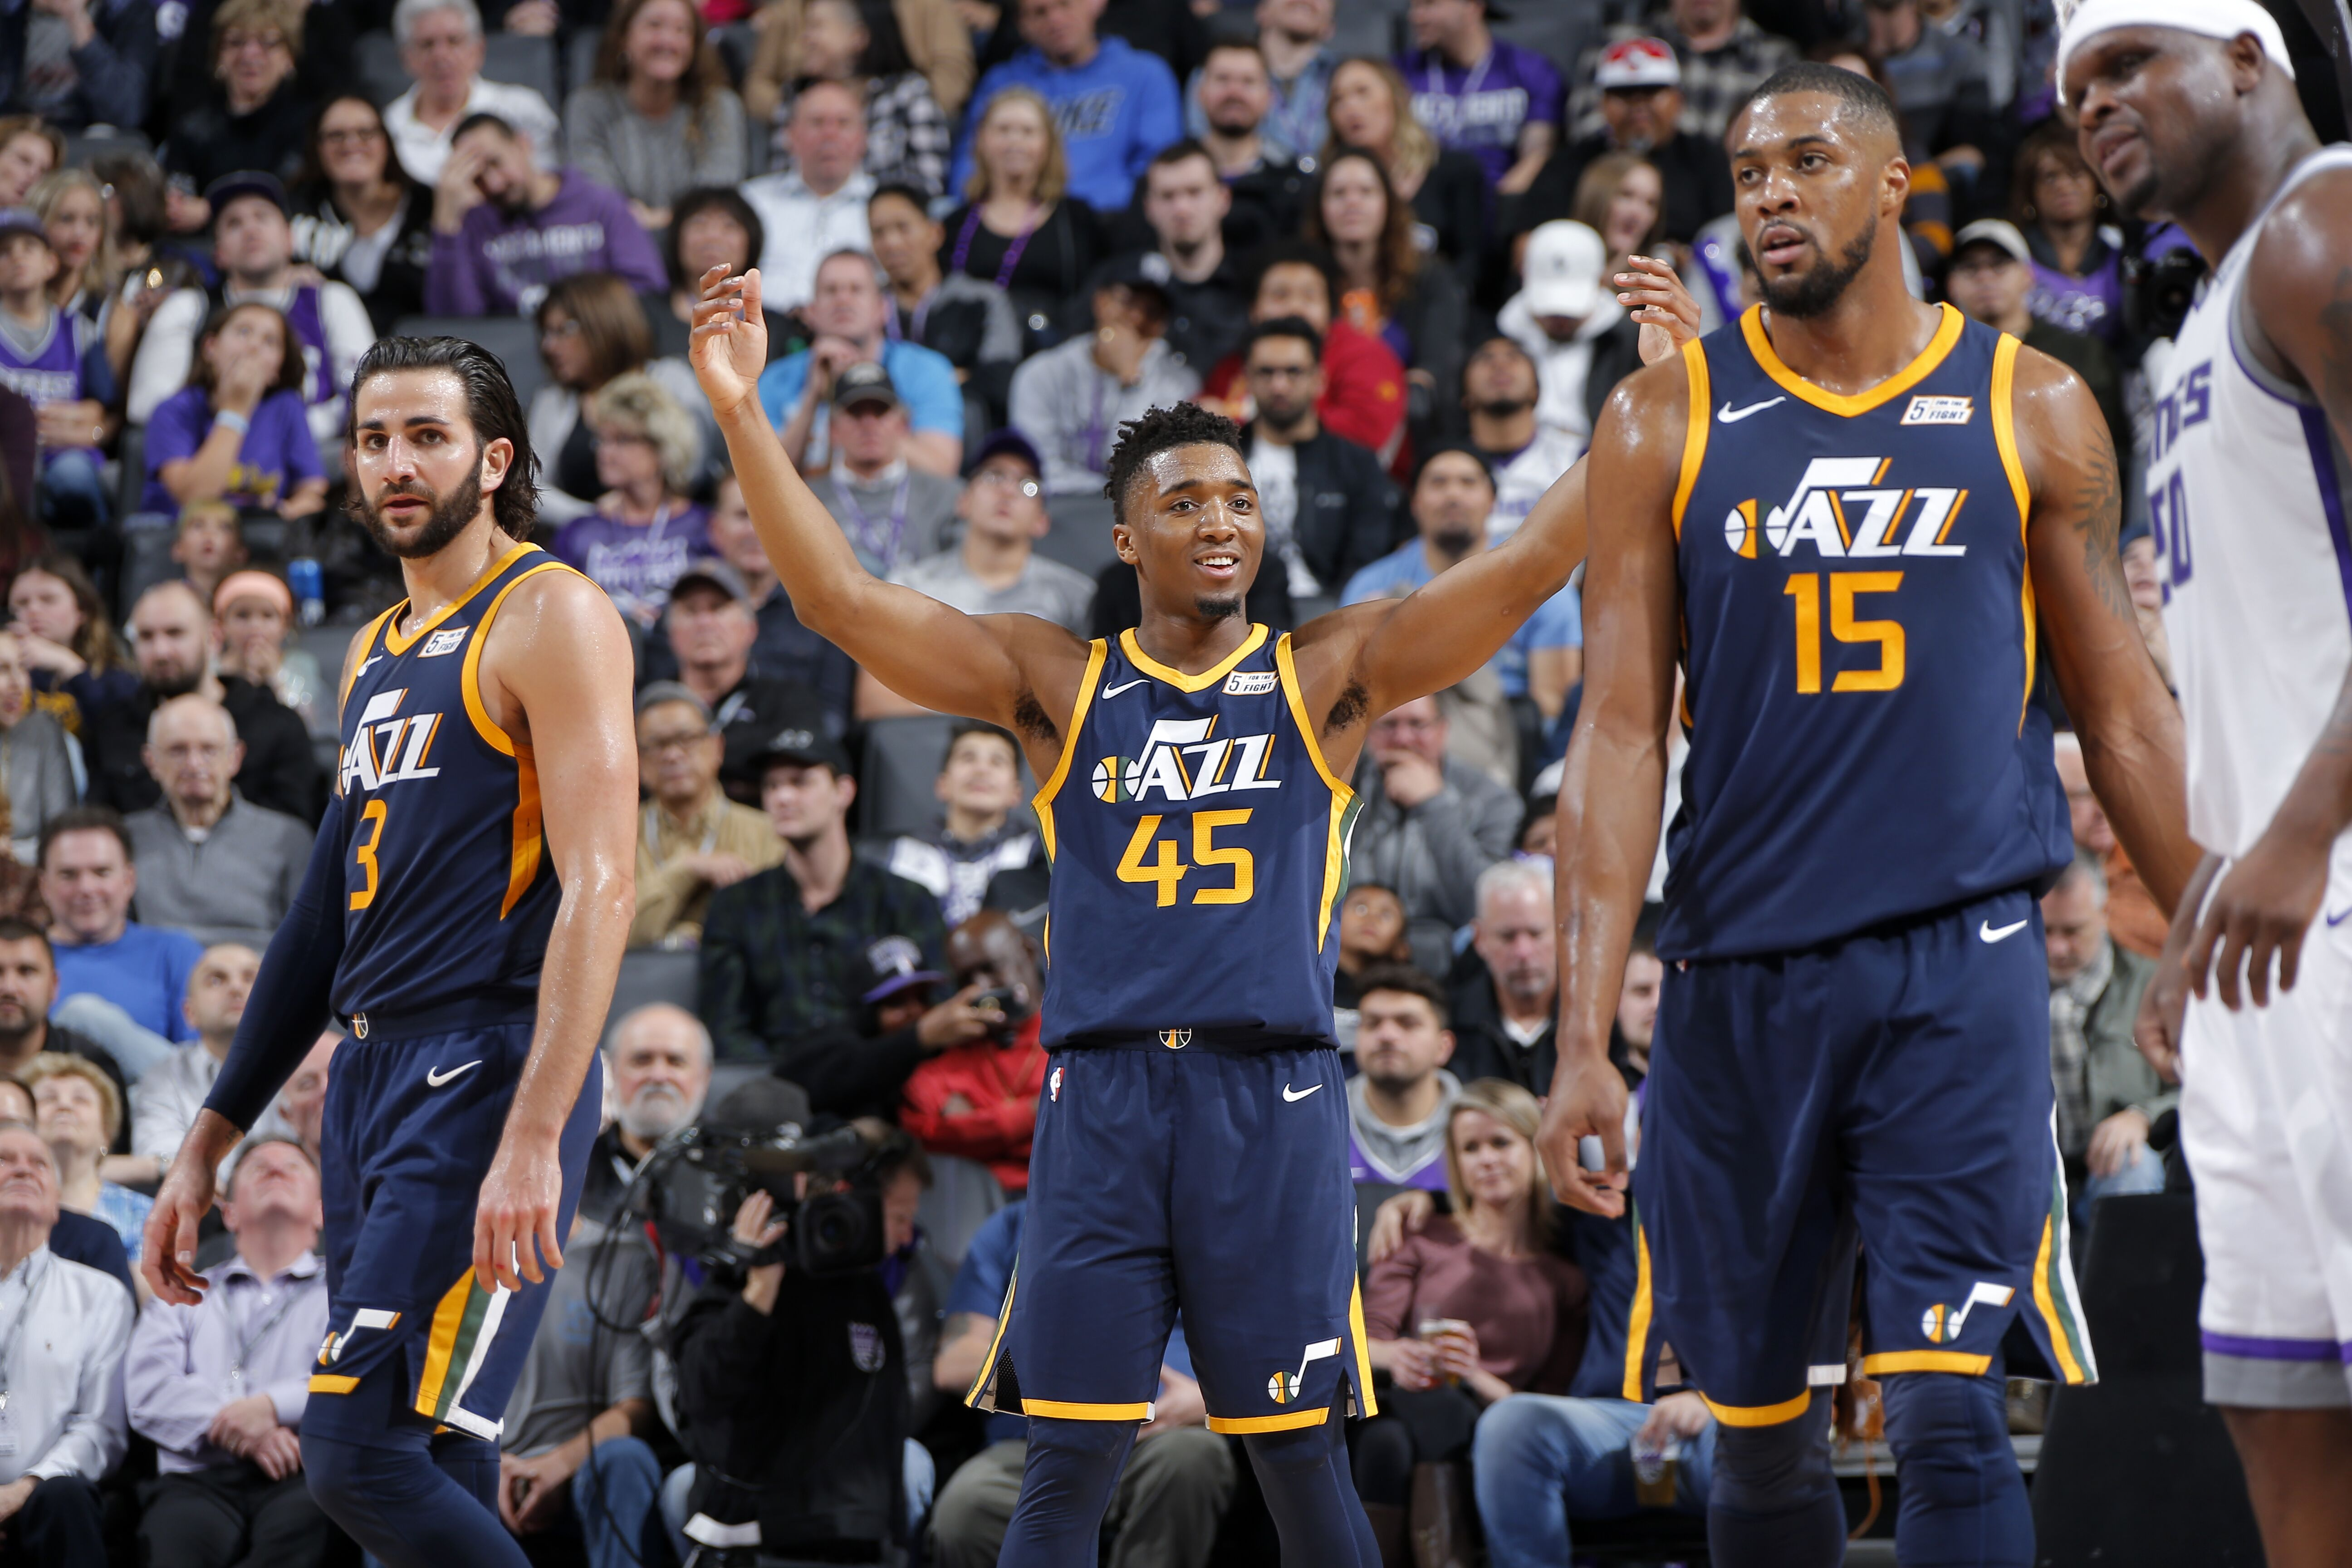 finest selection 4f53d 67168 Utah Jazz: Donovan Mitchell deserves to be in the Slam Dunk ...